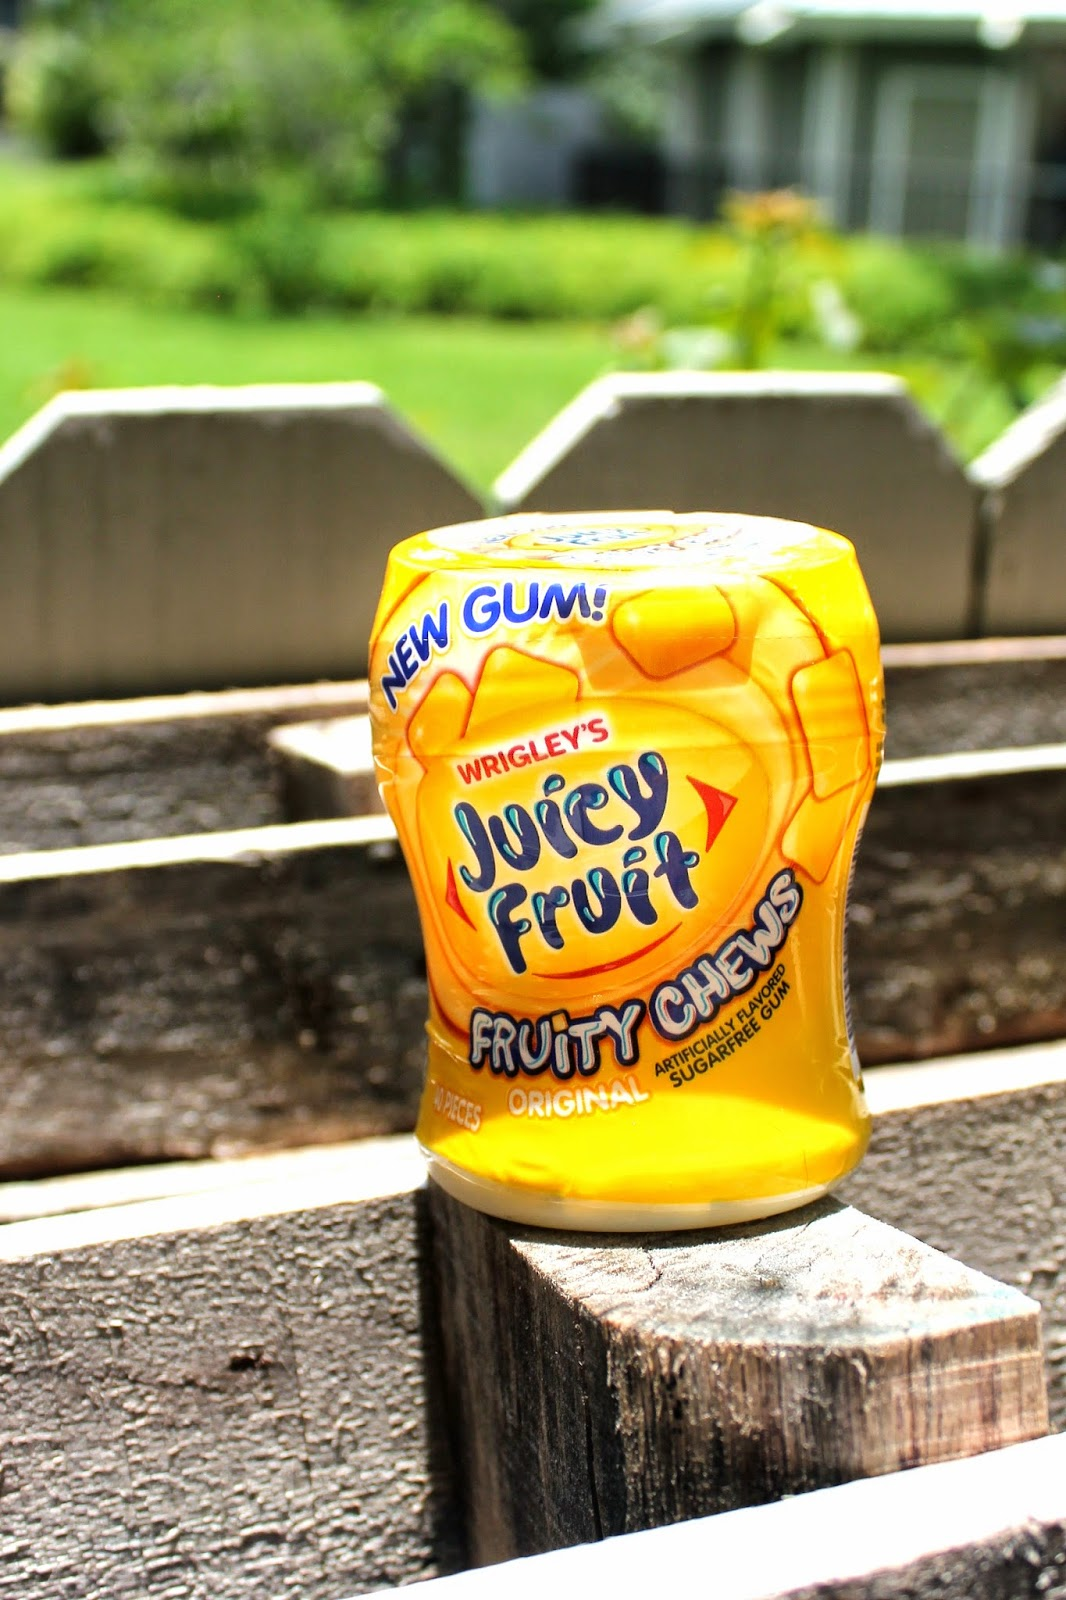 Show your fun side this summer with Juicy Fruit #JuicyFruitFunSide #CollectiveBias